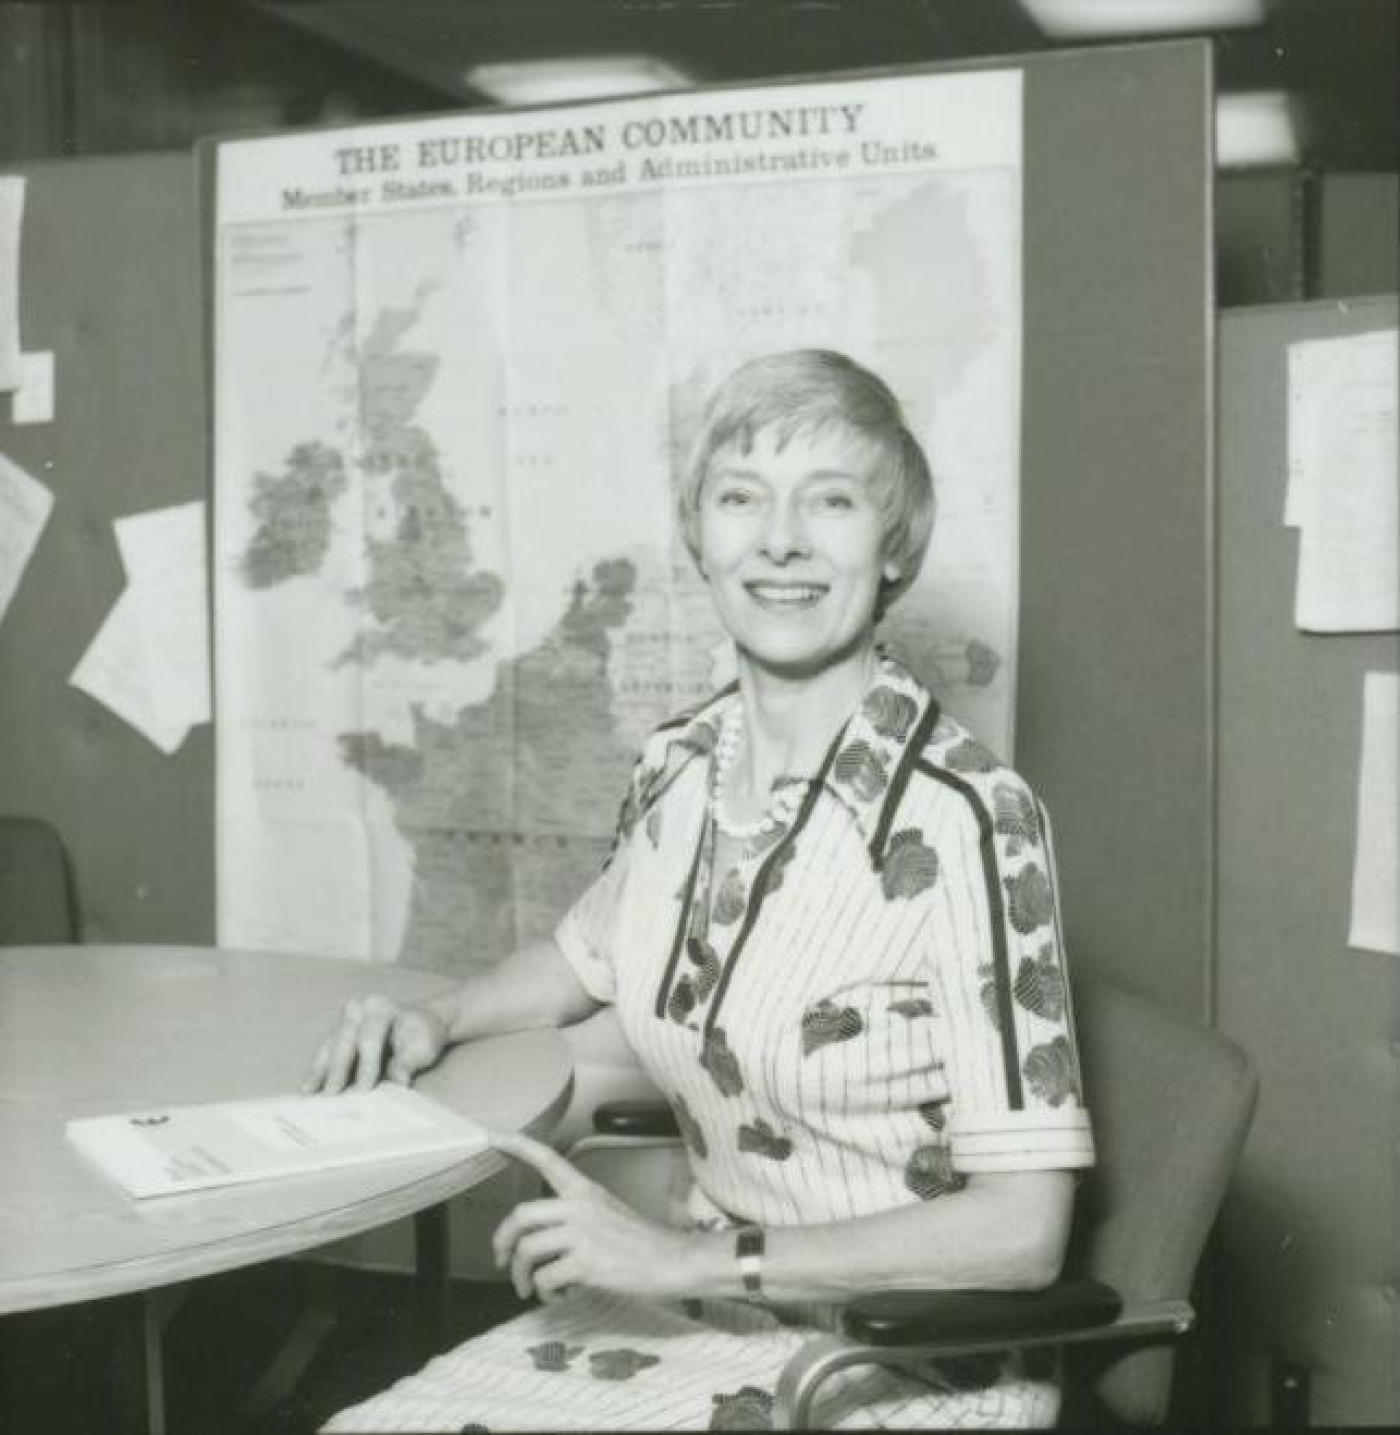 Elspeth Parkes became the Society's first Public Relations Officer